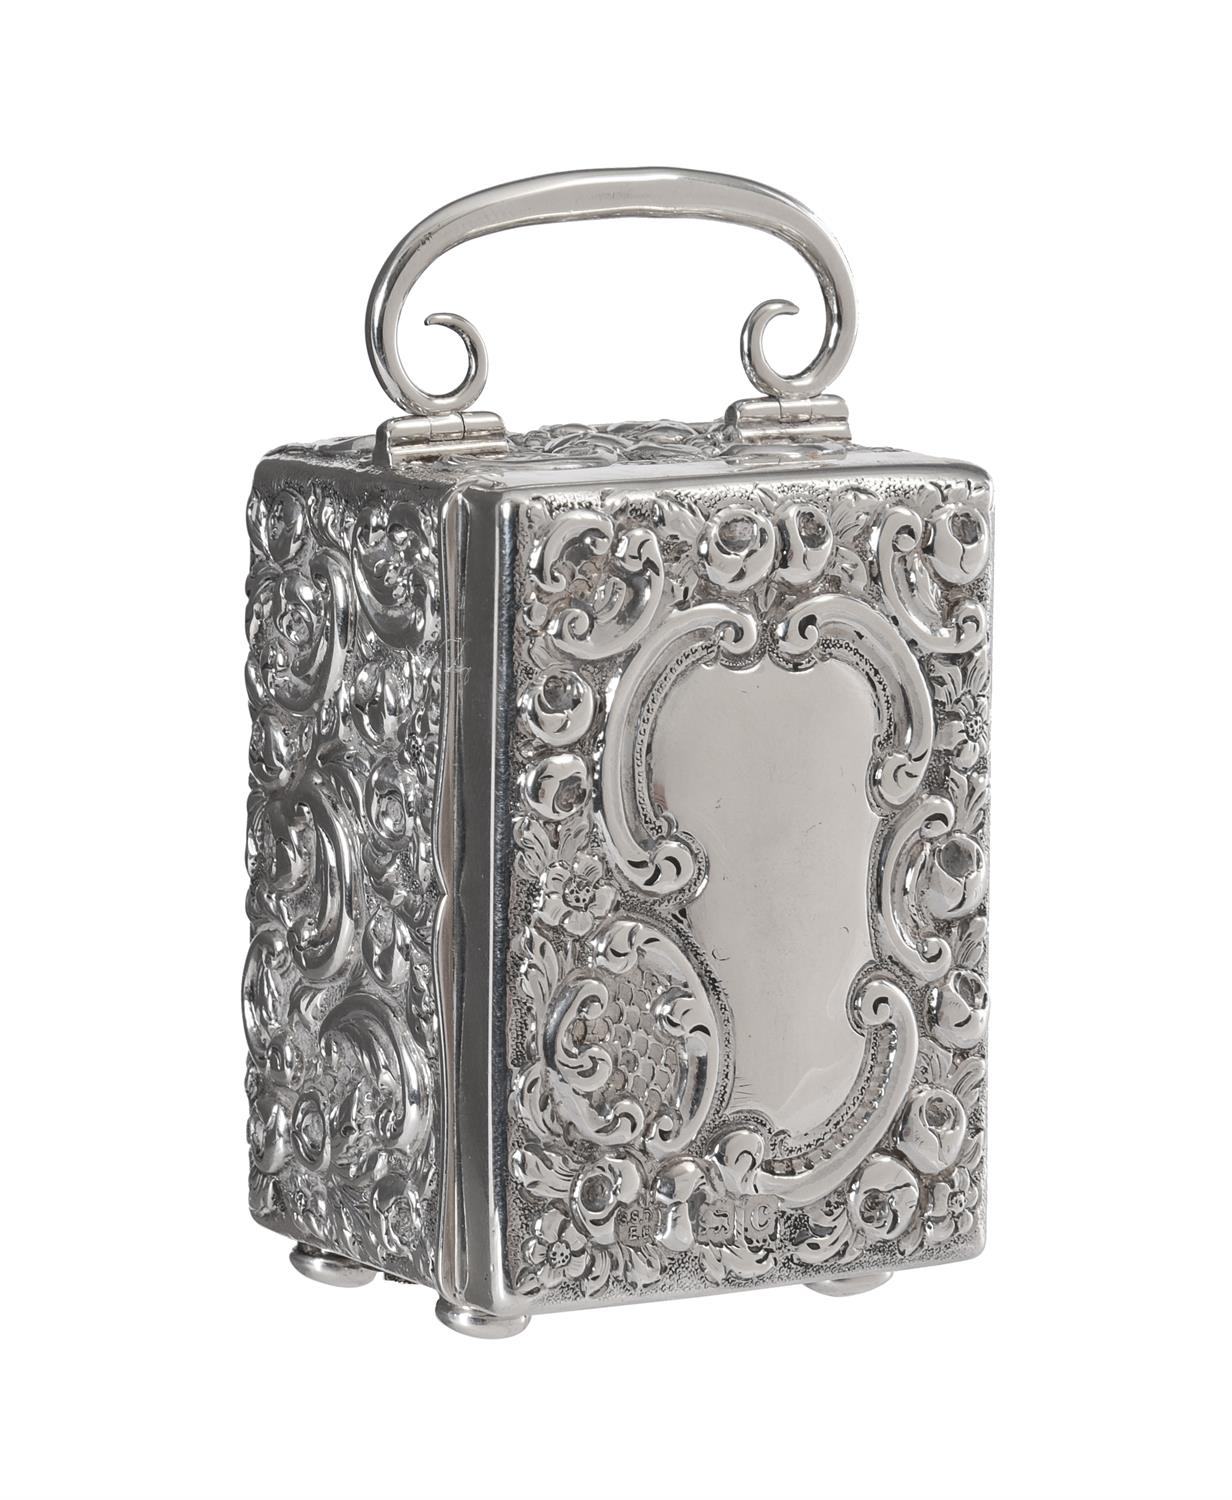 A Victorian silver cased miniature carriage timepiece - Image 2 of 6